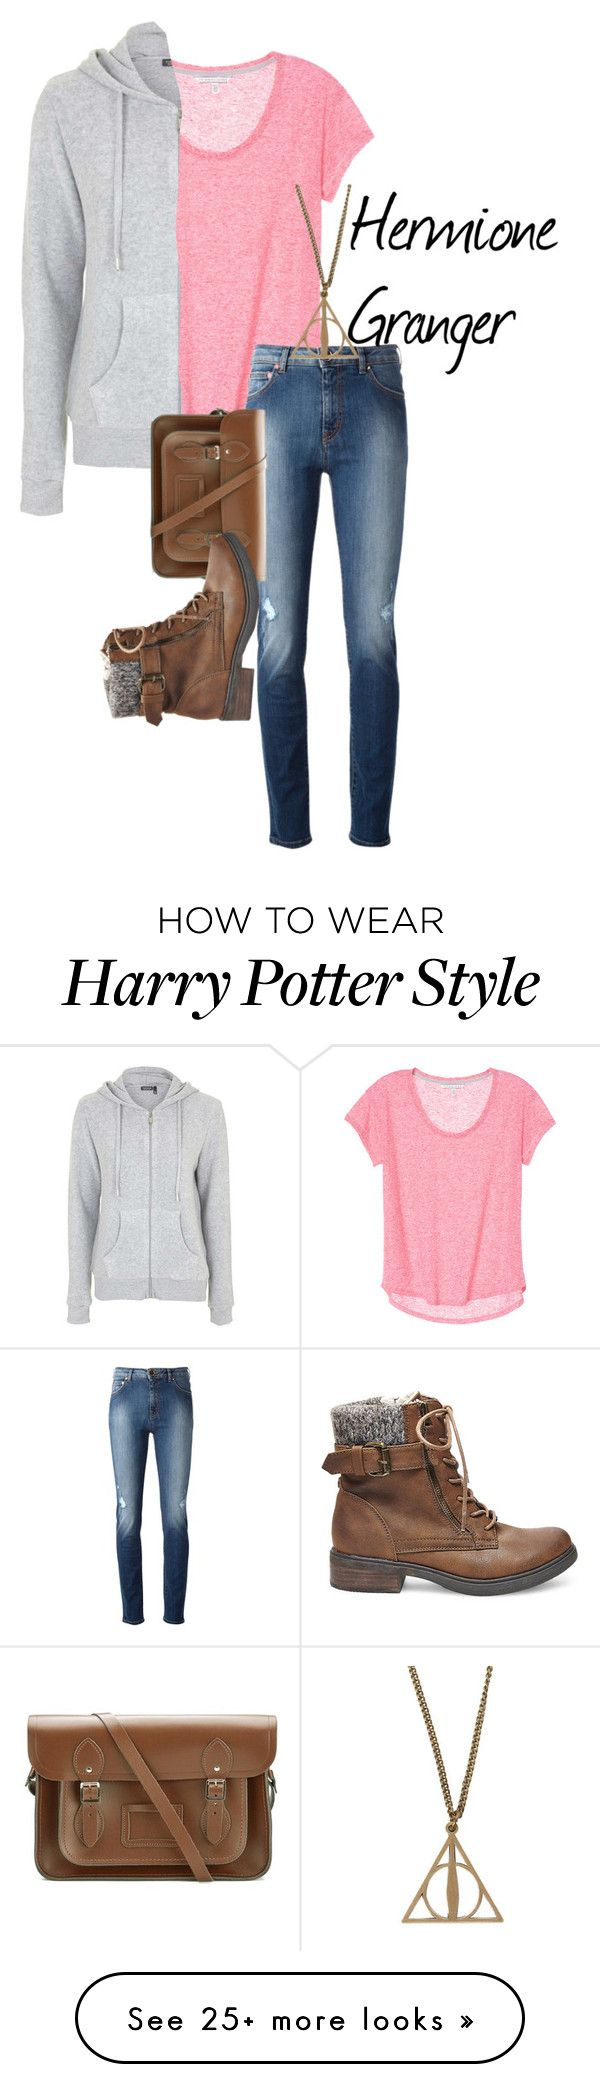 """""""Hermione Granger - Harry Potter"""" by ava-adams123 on Polyvore featuring Topshop, Moschino, The Cambridge Satchel Company, Steve Madden and harrypotter"""